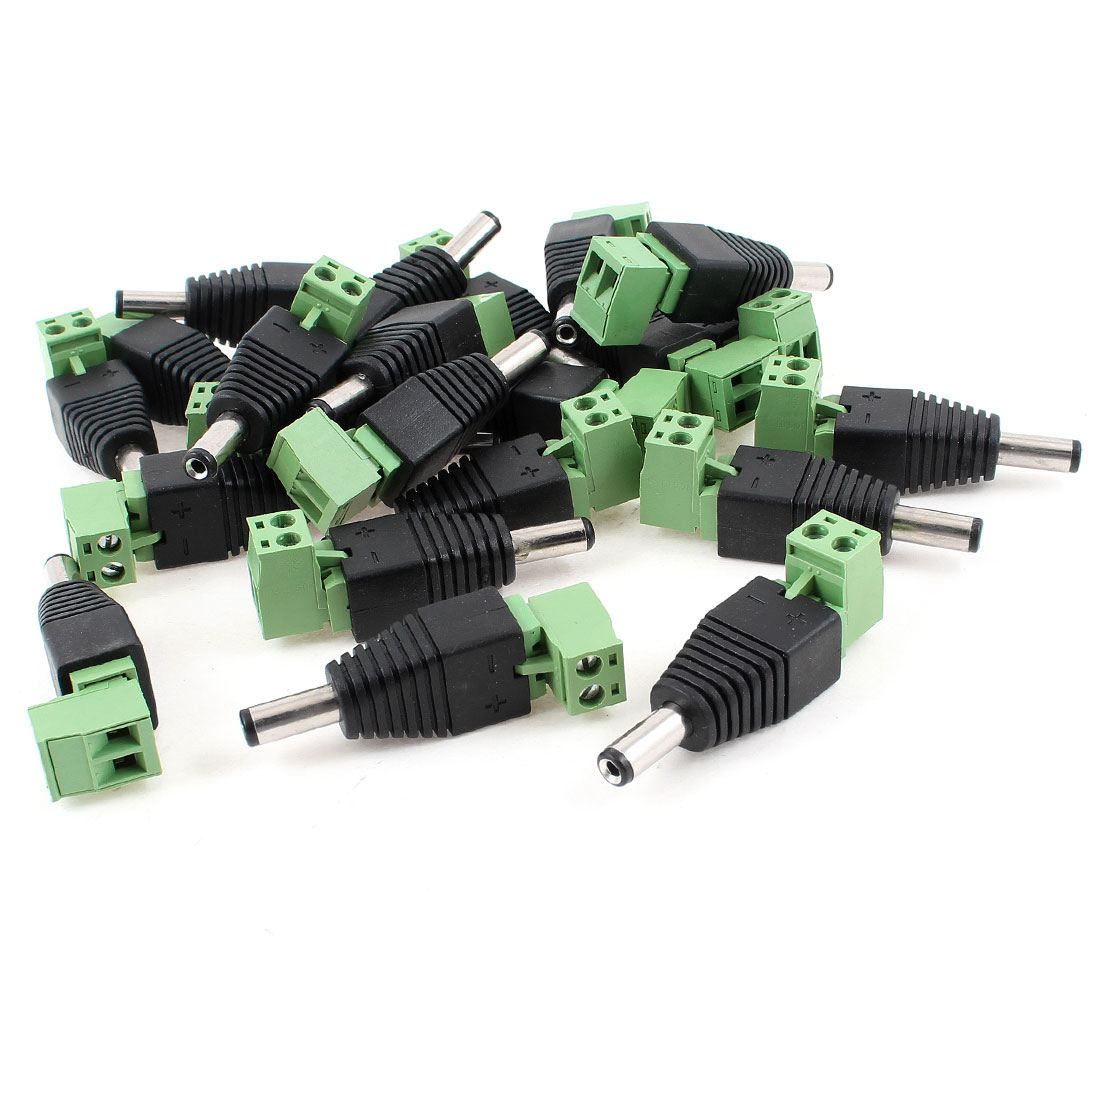 20 x Male 2.1x5.5mm 2.1mm DC Power Jack Adapter Plug Connector CCTV